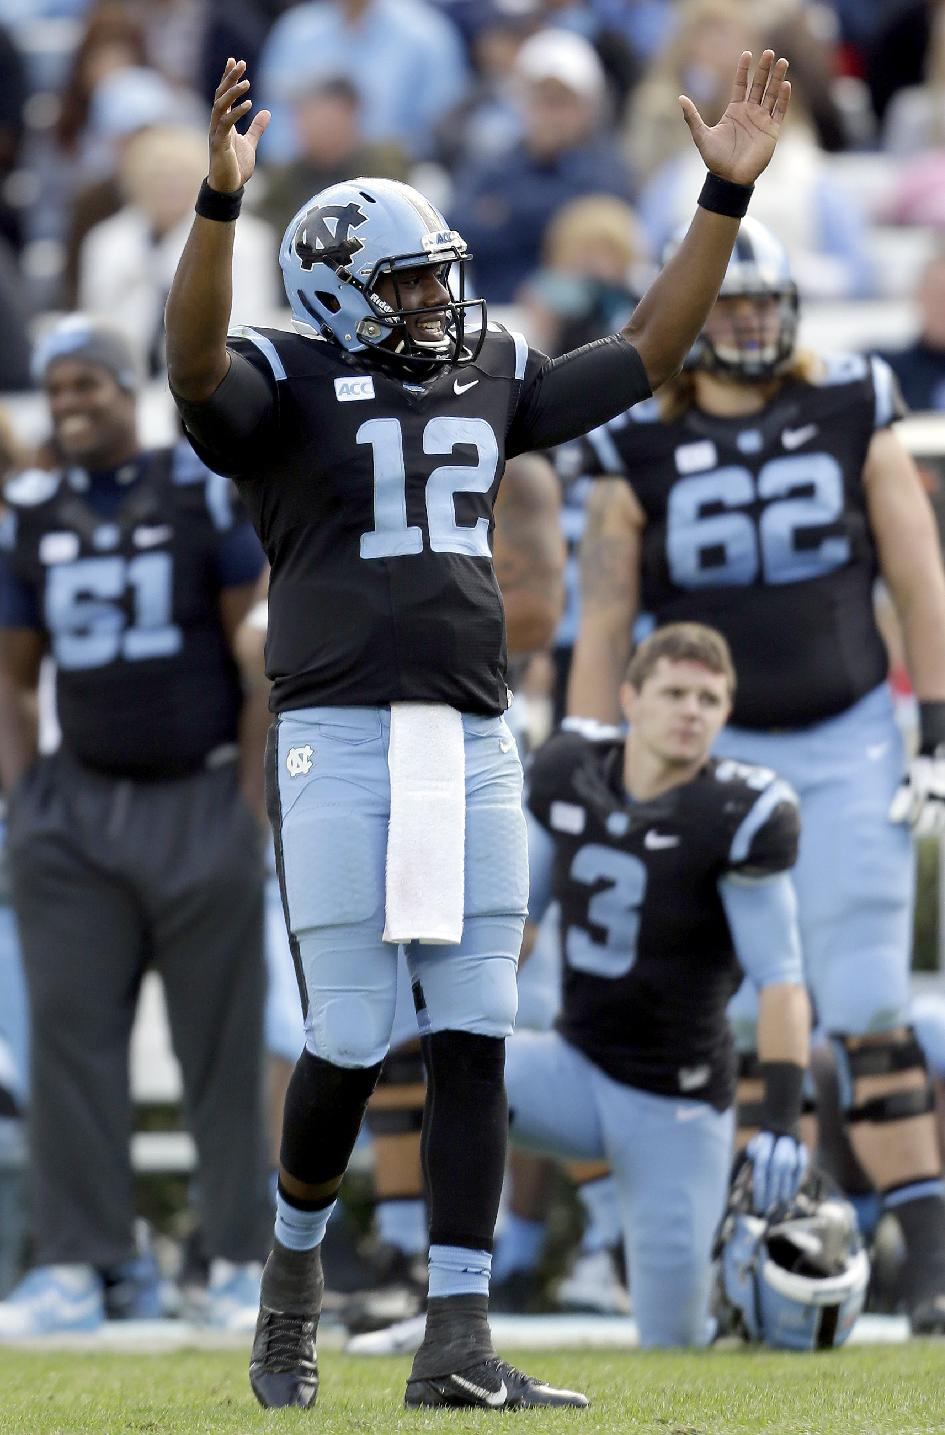 North Carolina quarterback Marquise Williams (12) reacts following a play under review during the second half of an NCAA college football game against Old Dominion in Chapel Hill, N.C., Saturday, Nov. 23, 2013. North Carolina won 80-20